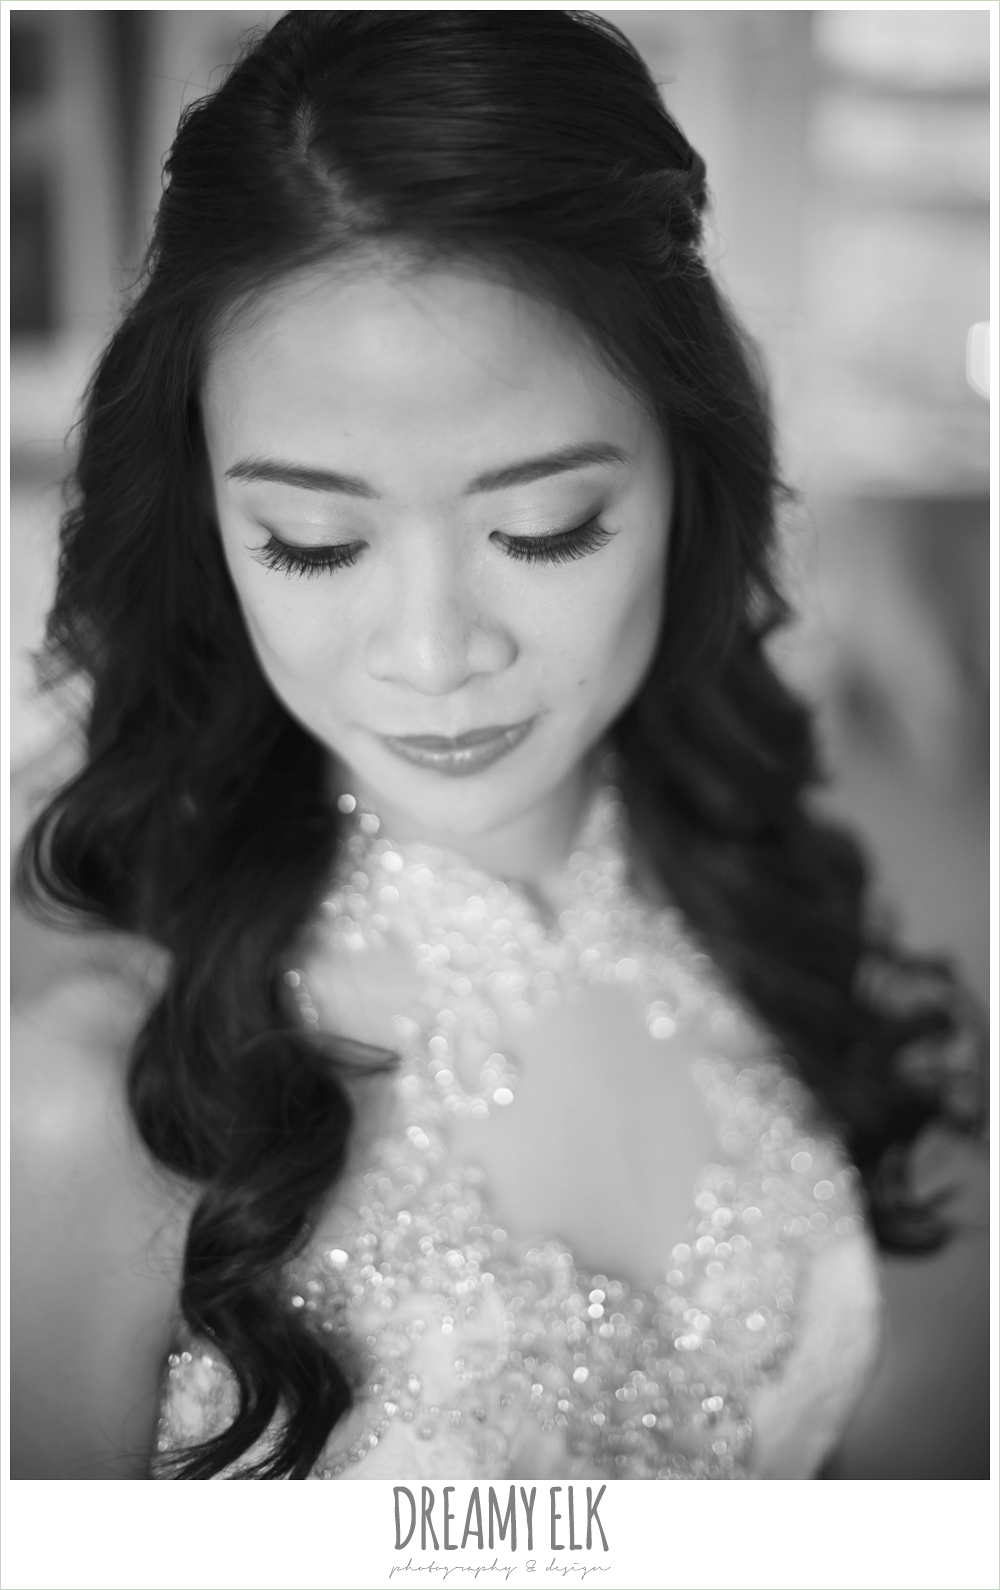 wedding hair down {dreamy elk photography and design}